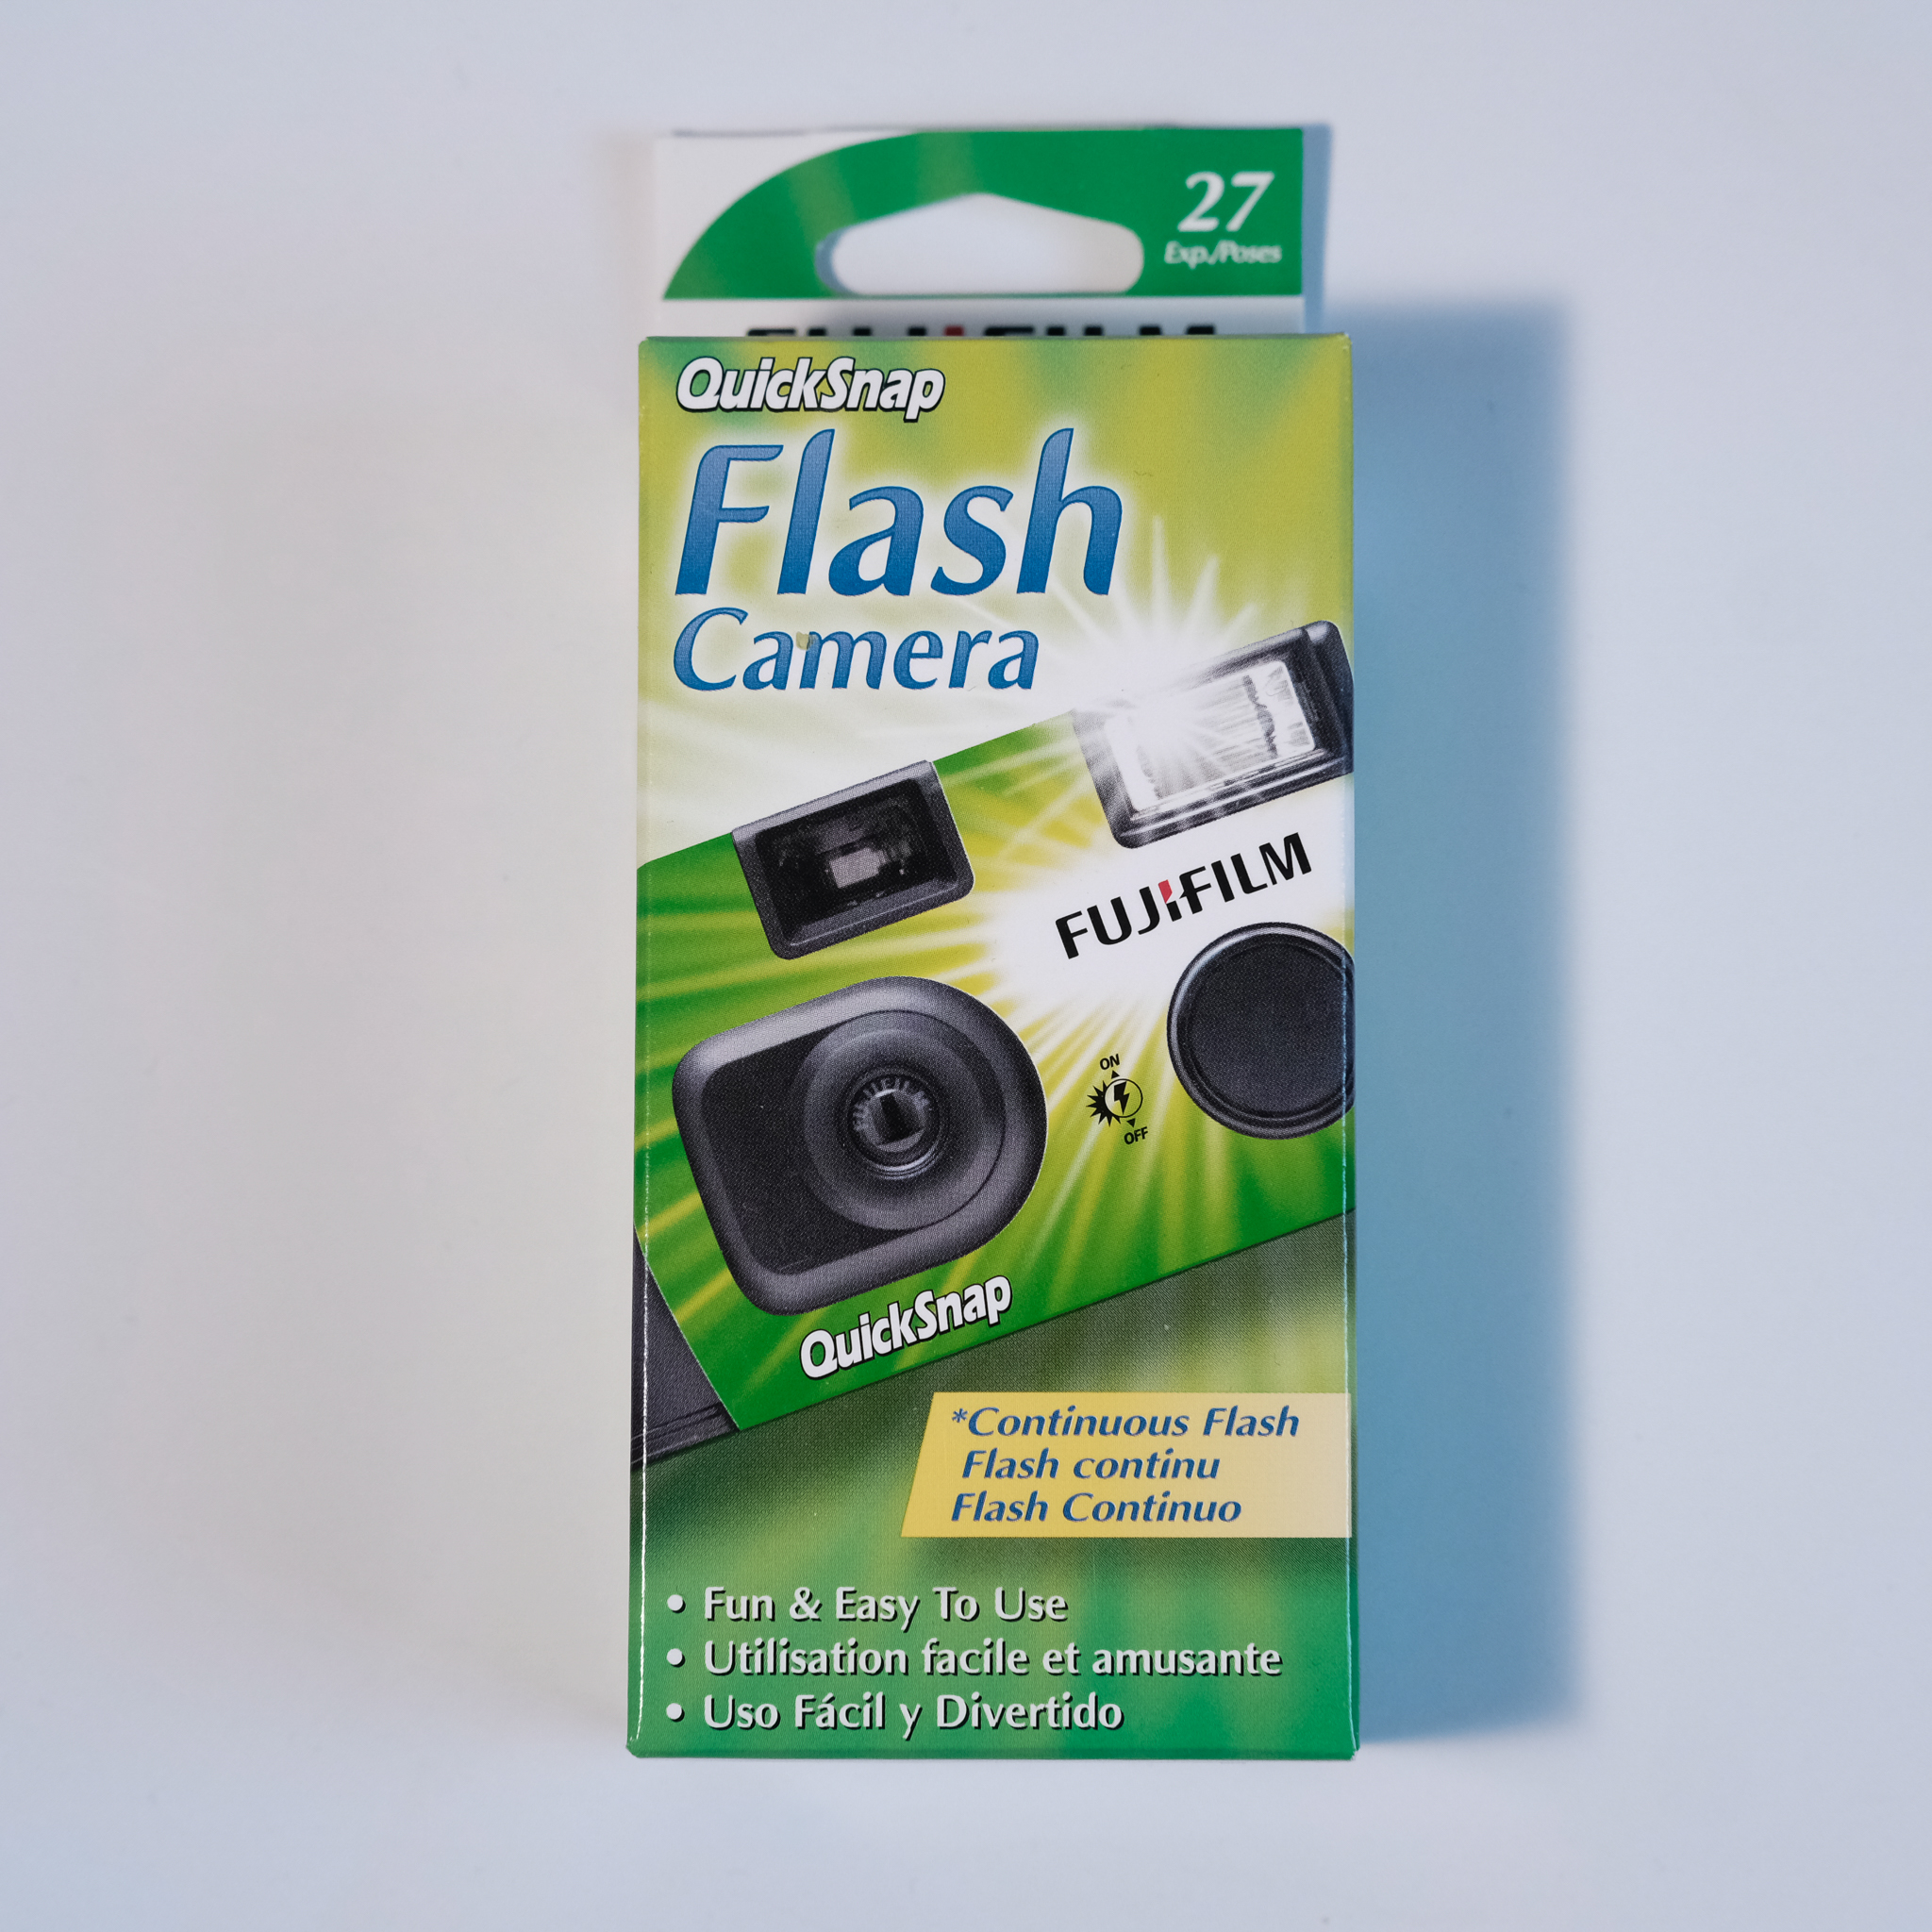 Picture of Fujifilm Quick Snap 400 Box (1 of 1).jpg